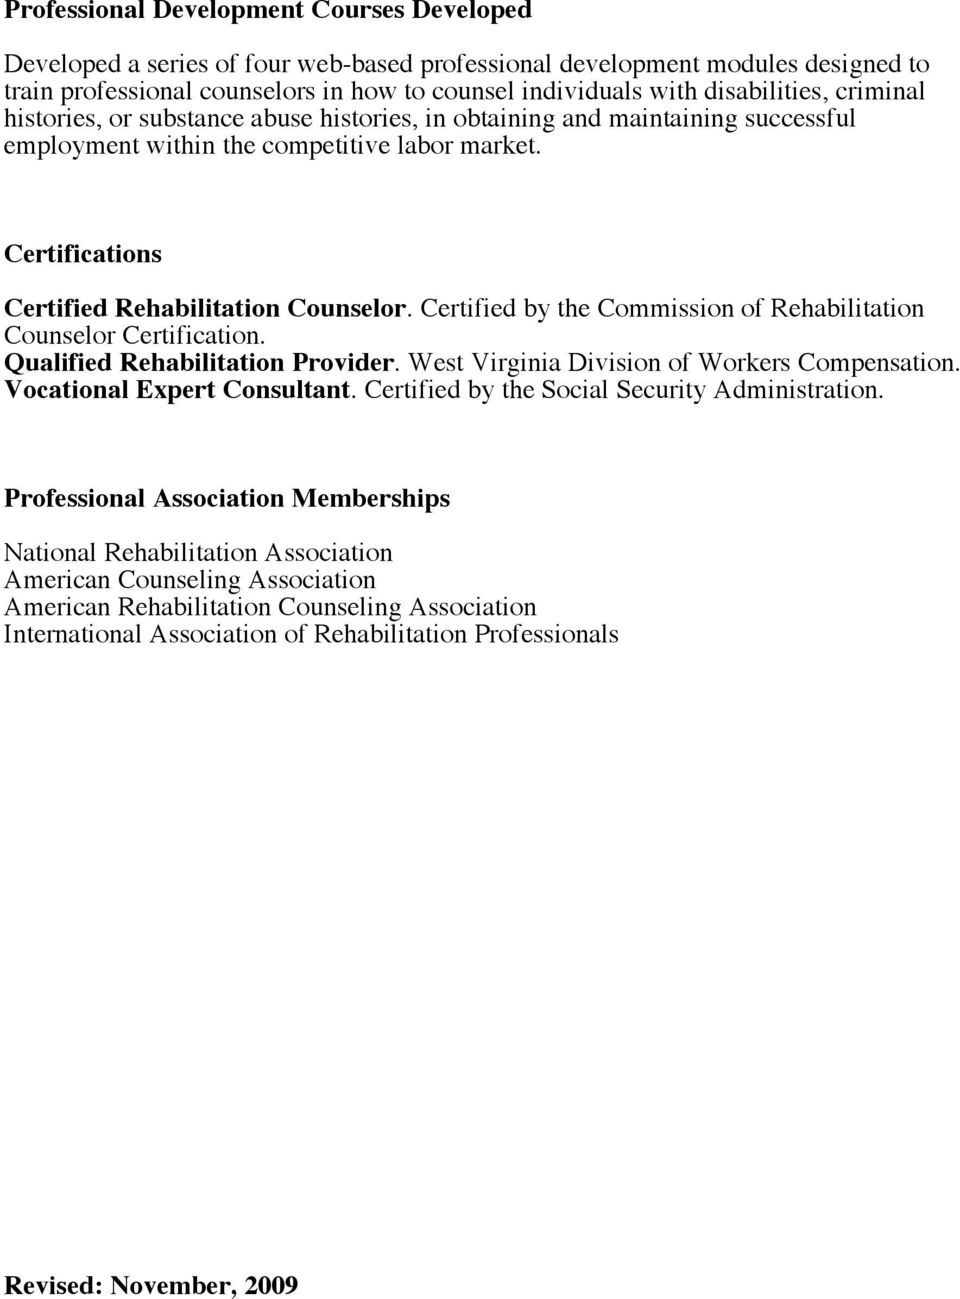 Certifications Certified Rehabilitation Counselor. Certified by the Commission of Rehabilitation Counselor Certification. Qualified Rehabilitation Provider.